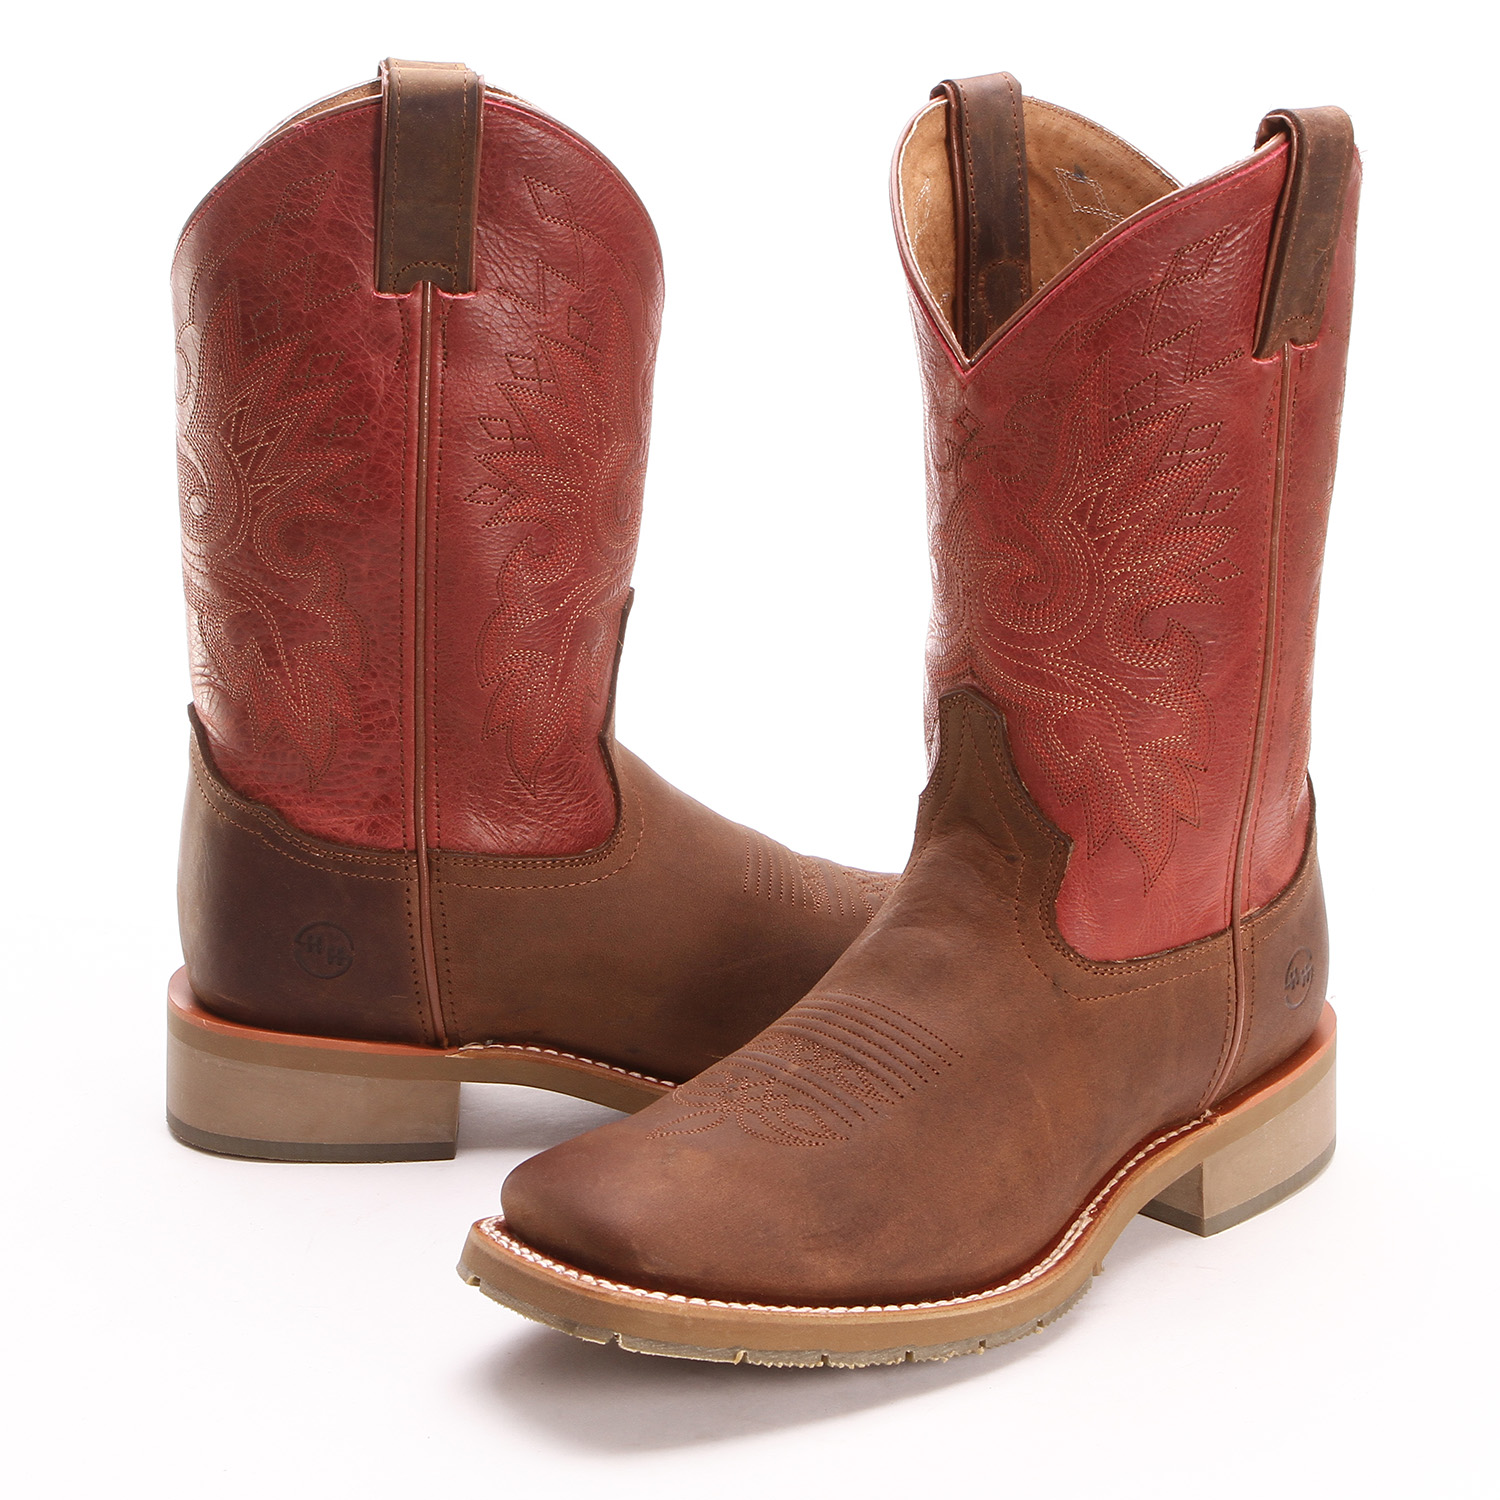 Best Cowboy Boot Brands Rs1sNZ52